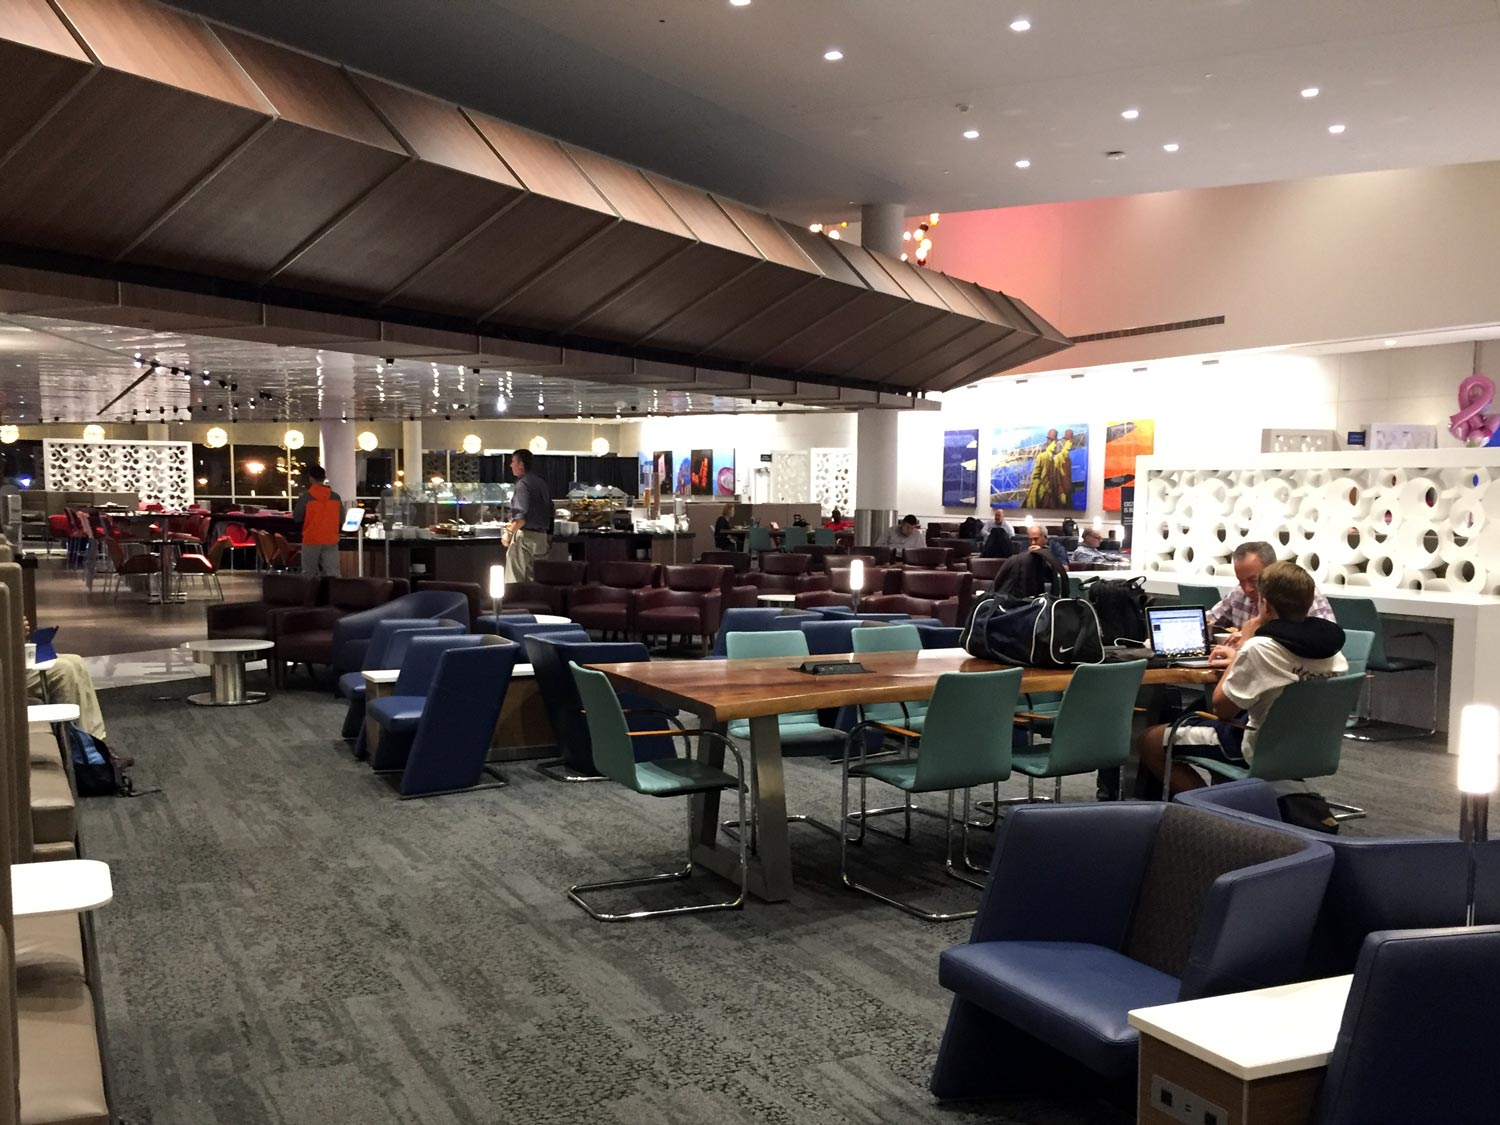 Concourse B Delta Sky Club seating area